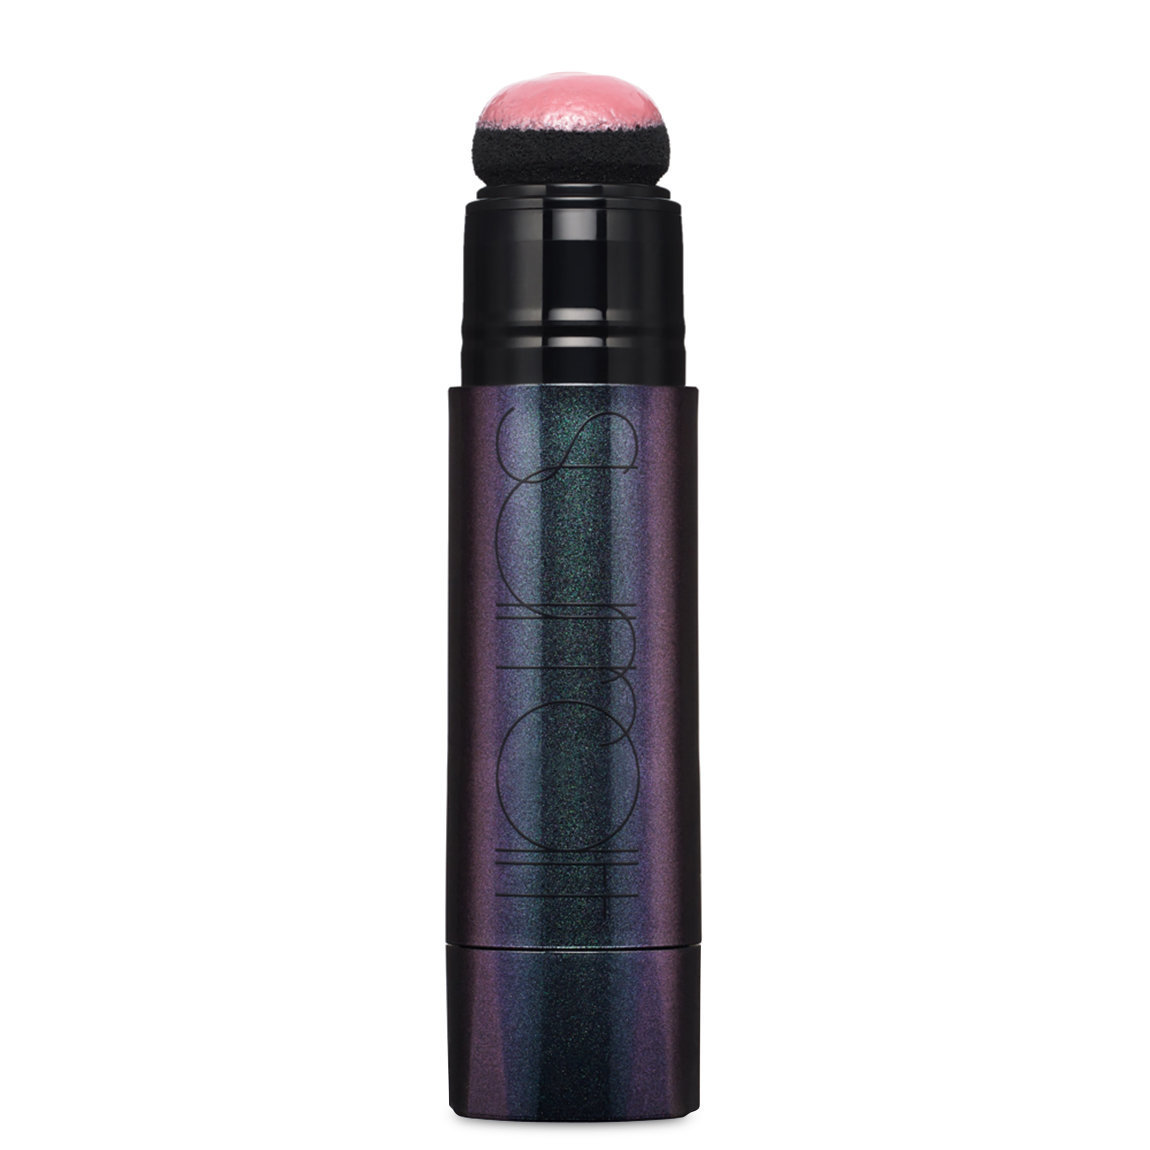 Surratt Beauty Artistique Liquid Blush Barbe à Papa alternative view 1.